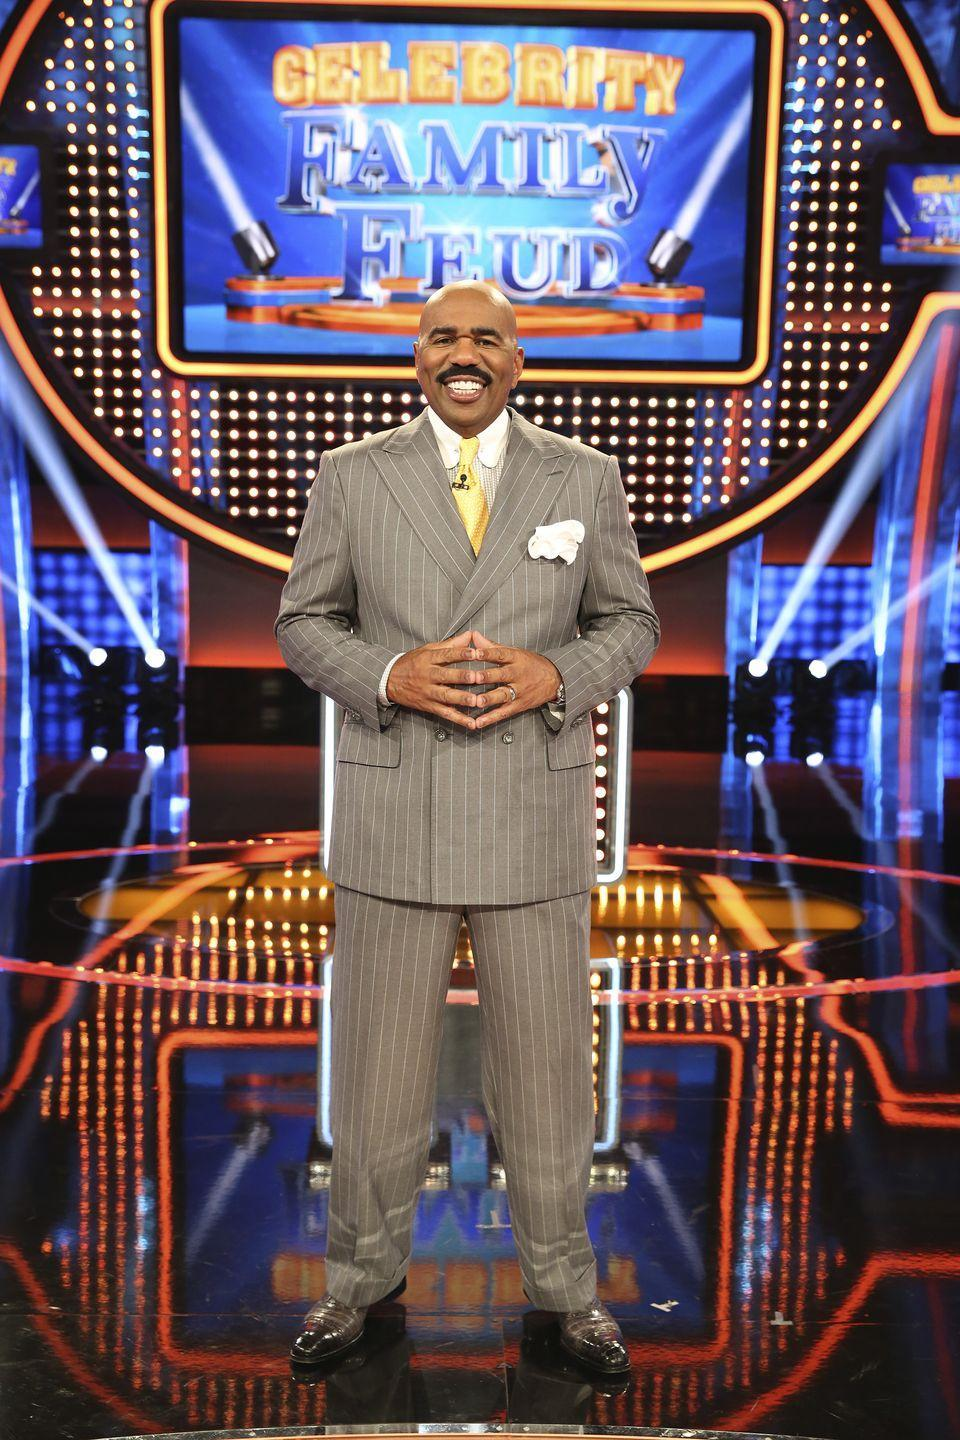 <p>Steve Harvey took over hosting duties for the show in 2010. Harvey is a successful standup comedian, author, actor and host. He's known for his work on the popular music show <em>Showtime at the Apollo. </em>In 2015, ABC called for <em>Celebrity Family Feud, </em>a primetime spin-off hosting celebrity families and friends. Both versions of the popular show have been renewed.</p>